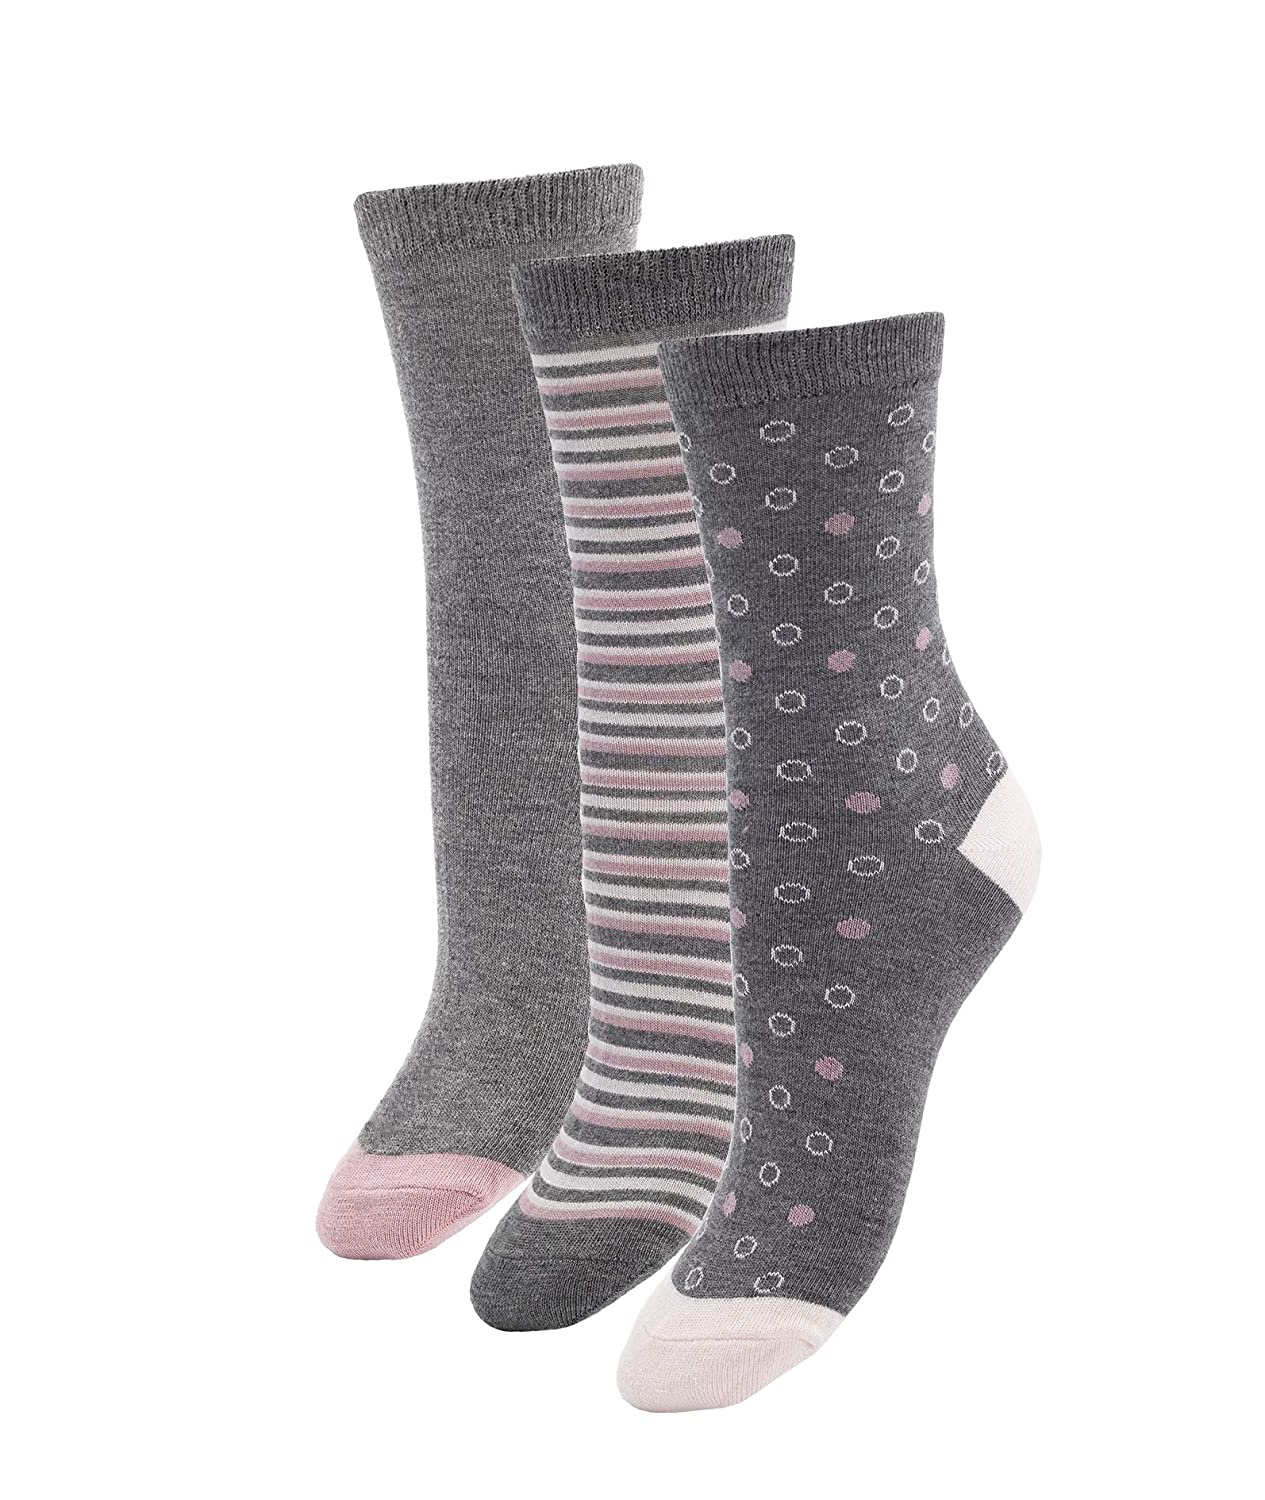 Super Soft Antibacterial /& Breathable /& Durable 3 or 6 Pairs Womens Bamboo Crew Socks Shoe Size 6-10